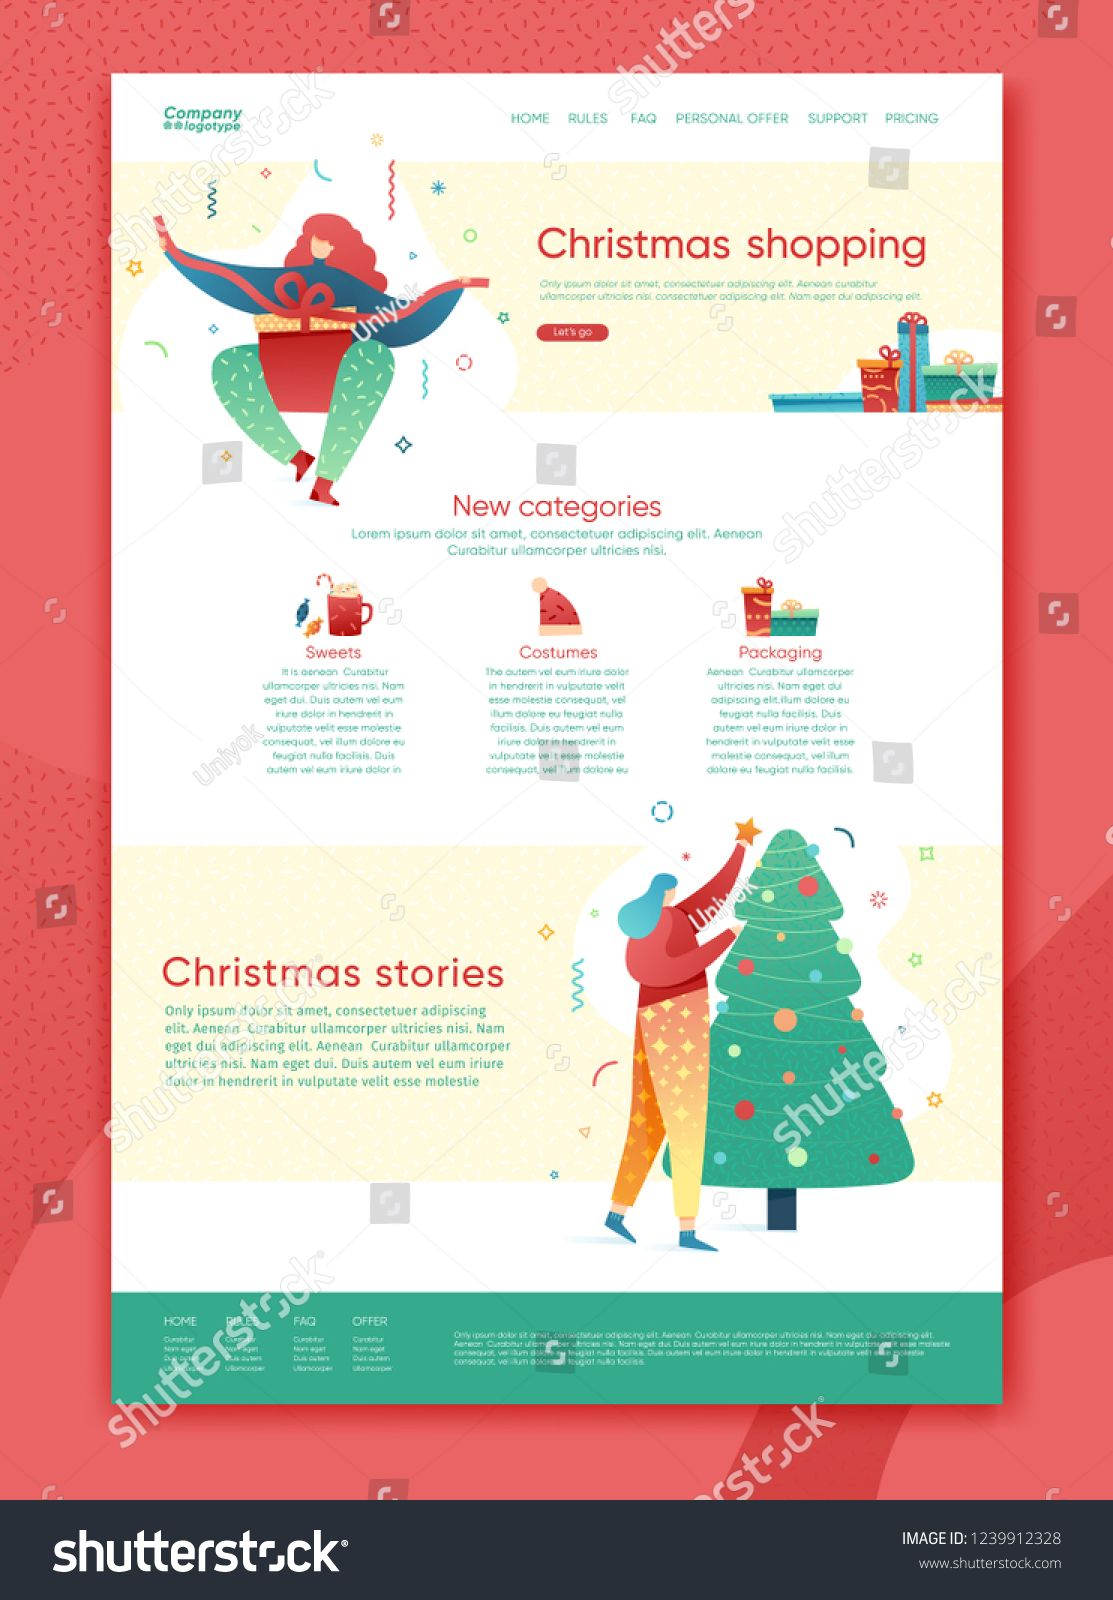 Design Winter Holidays Landing Page Template Merry Christmas Shopping And Happy New Yea Christmas Shopping Websites Vintage Business Cards Christmas Packaging